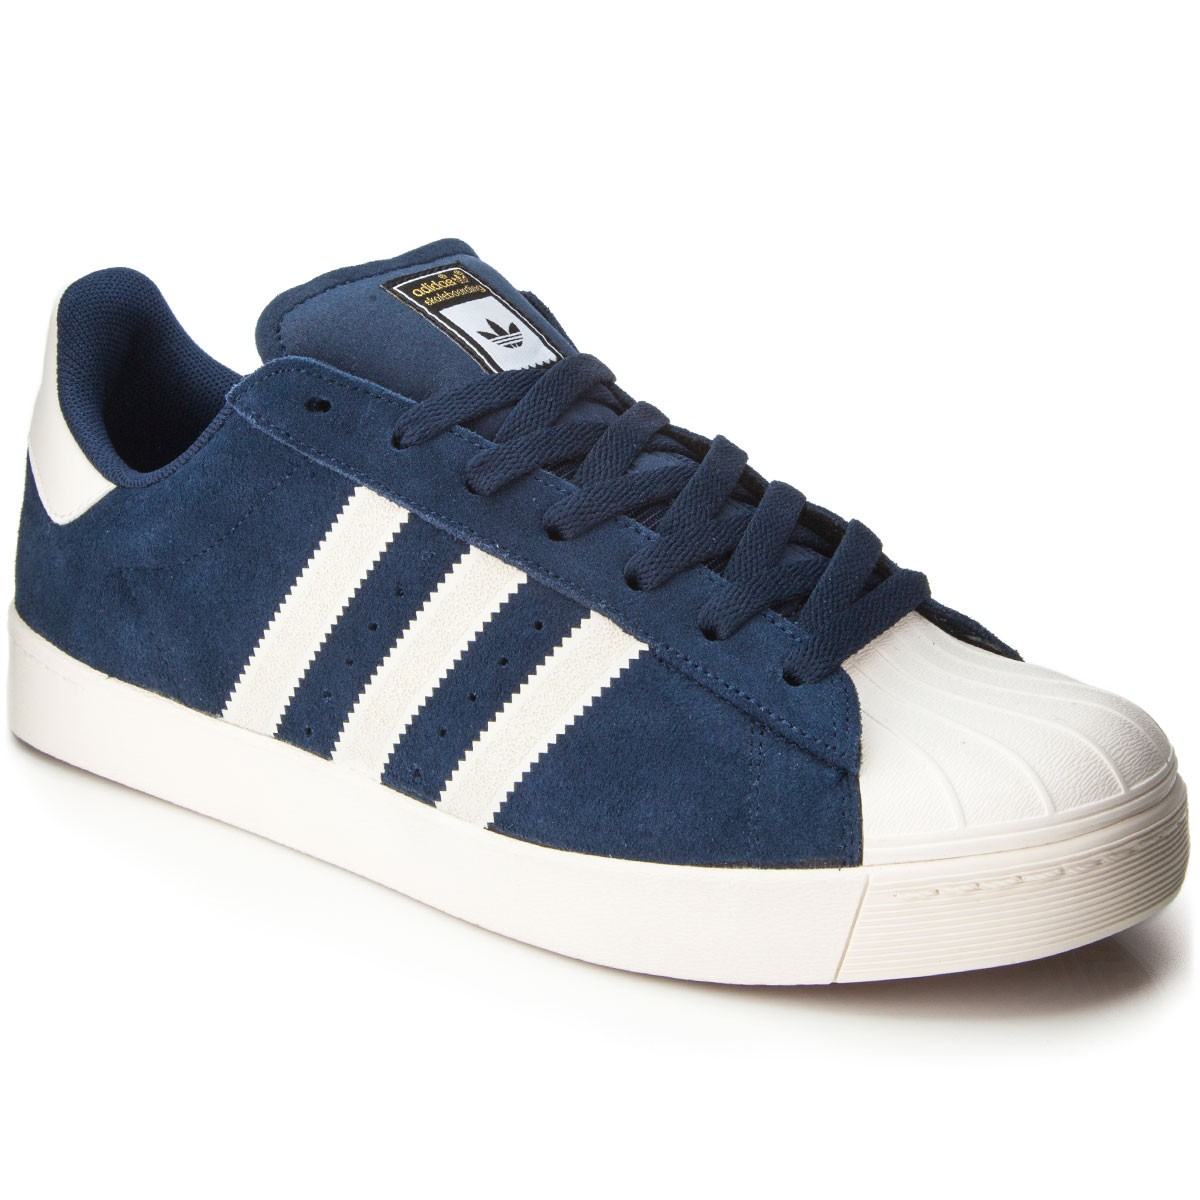 f3ea8d4e94c8 Cheap Adidas Superstar Ni a 35